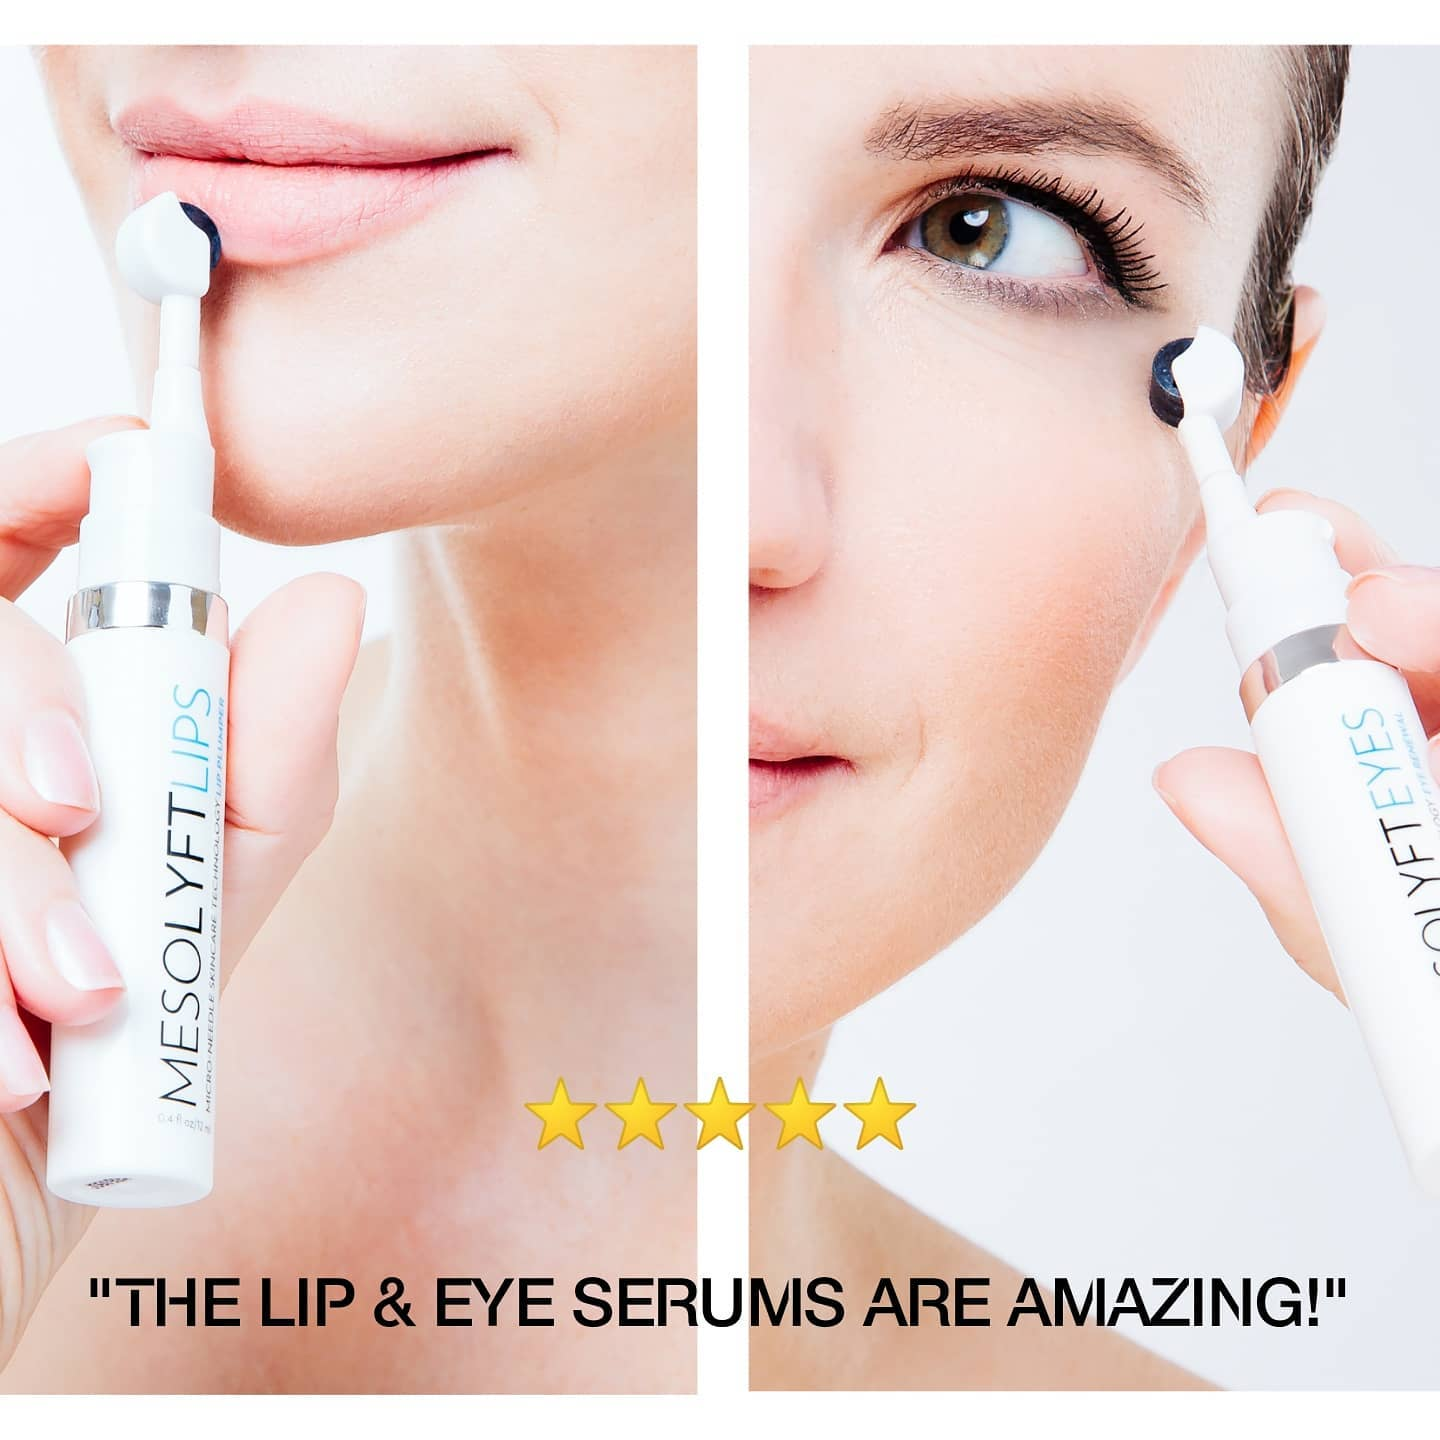 A Life Changing Eyelid Cream In As A Device